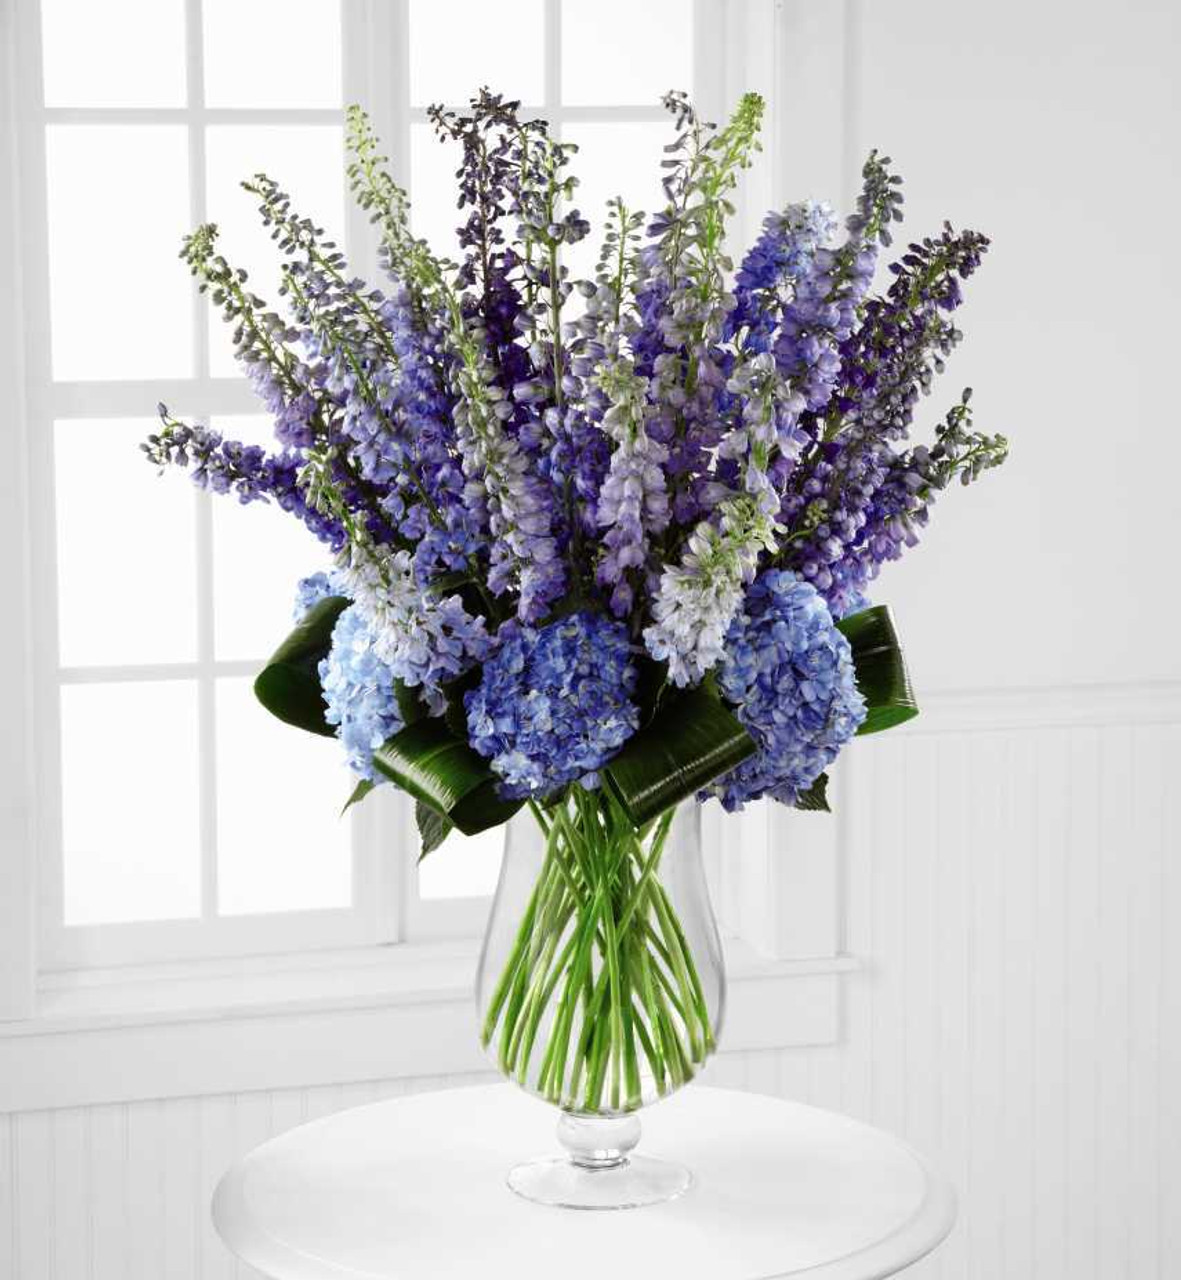 Luxury bouquet long island flower delivery honestly luxury bouquet long island flower delivery izmirmasajfo Choice Image